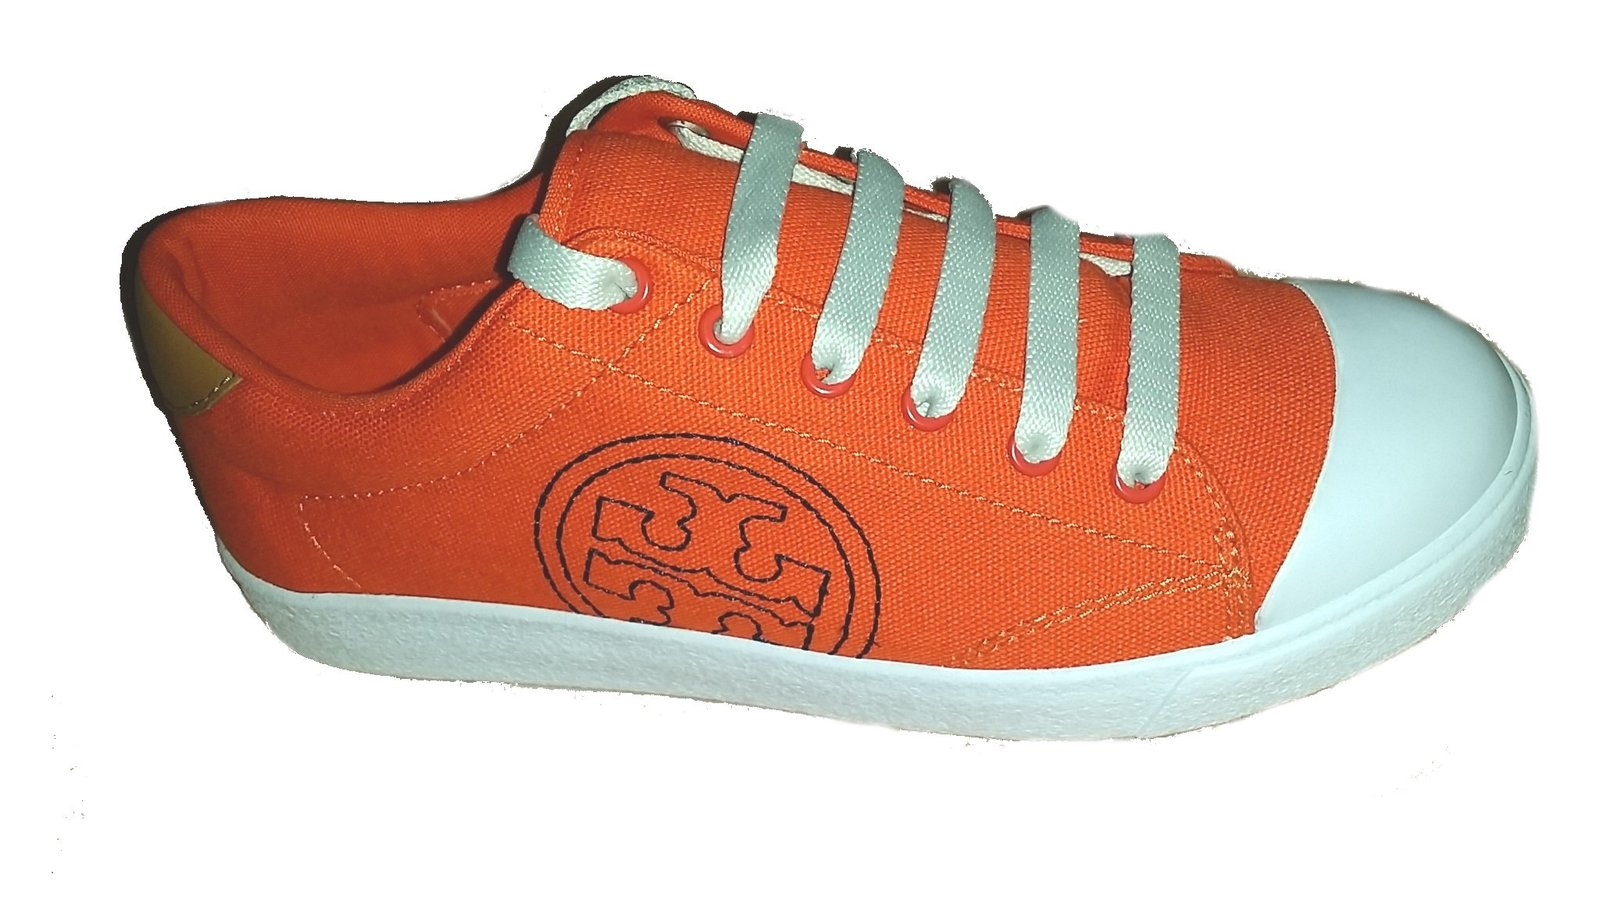 burch wally sneaker canvas rubber shoes 7 5